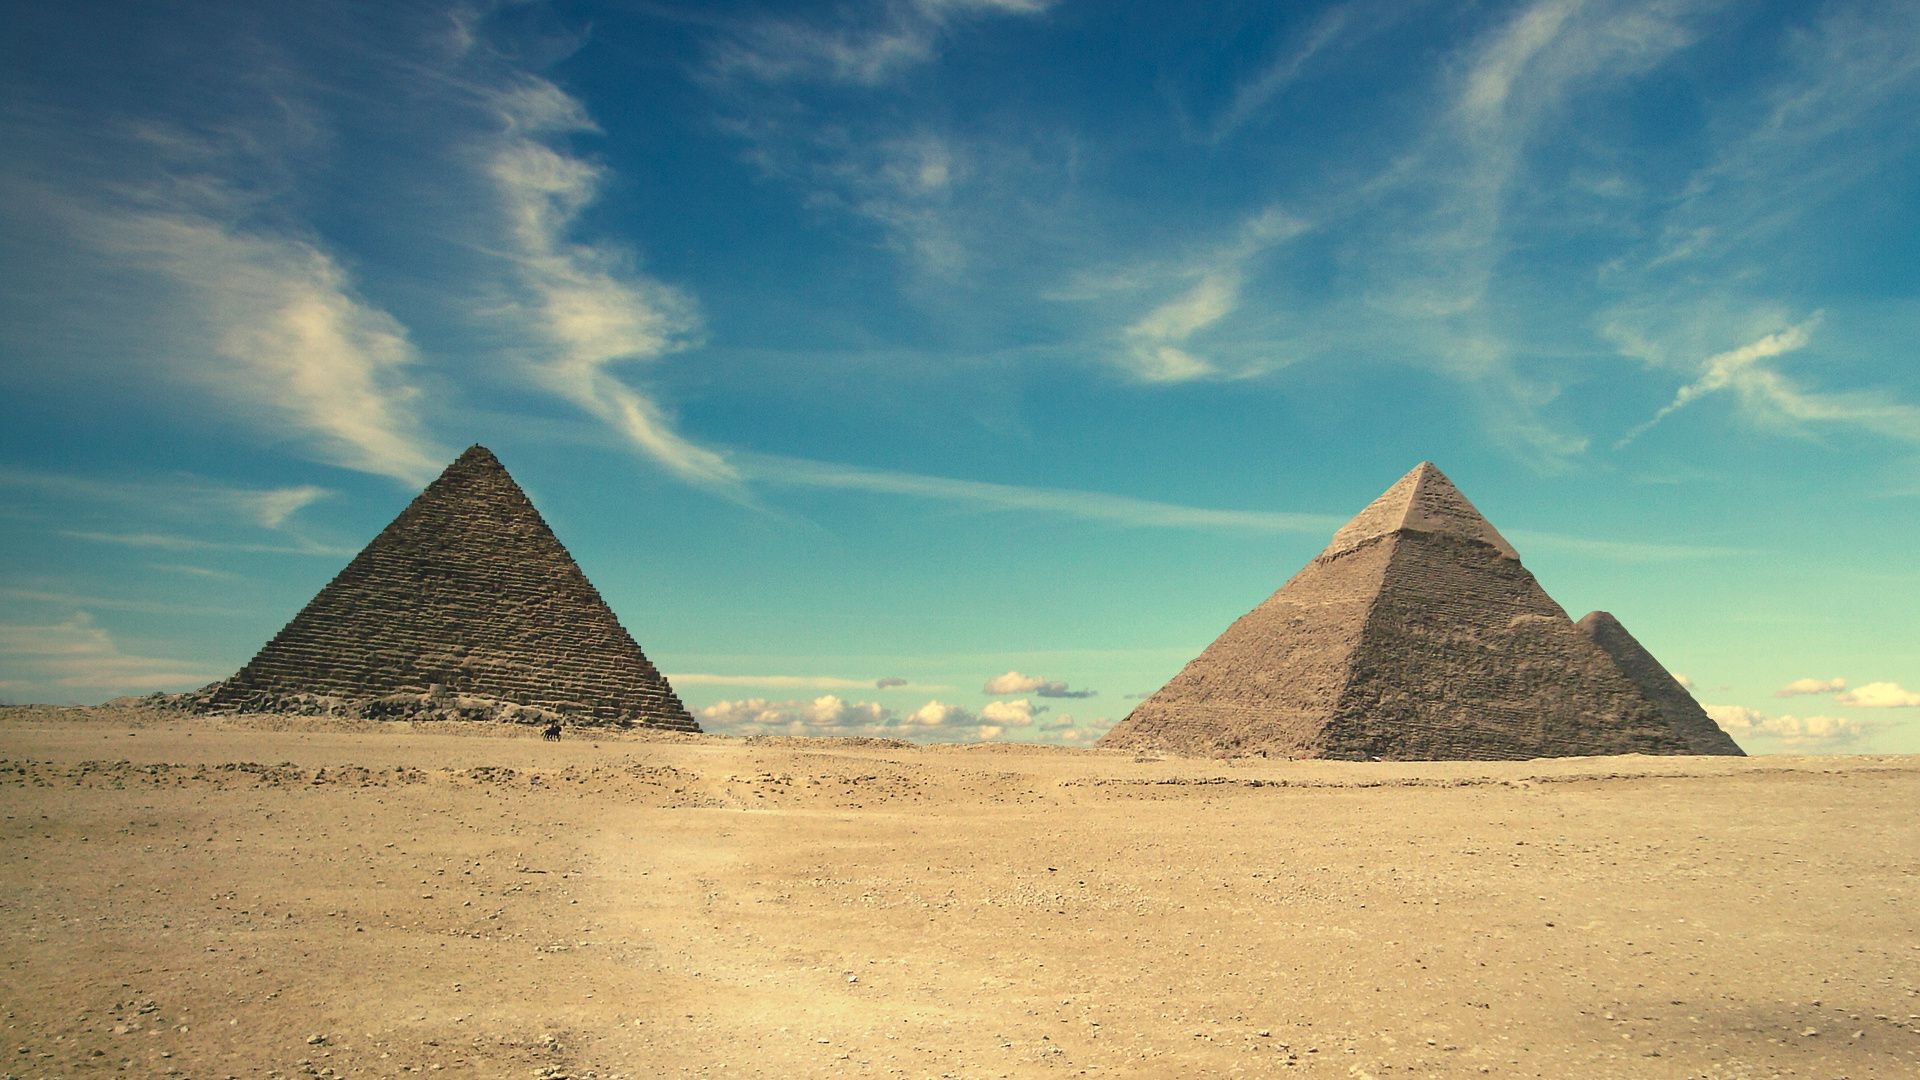 famous places pyramid desert pharaoh grave archaeology camel sand travel sphinx sun outdoors triangle sky mausoleum